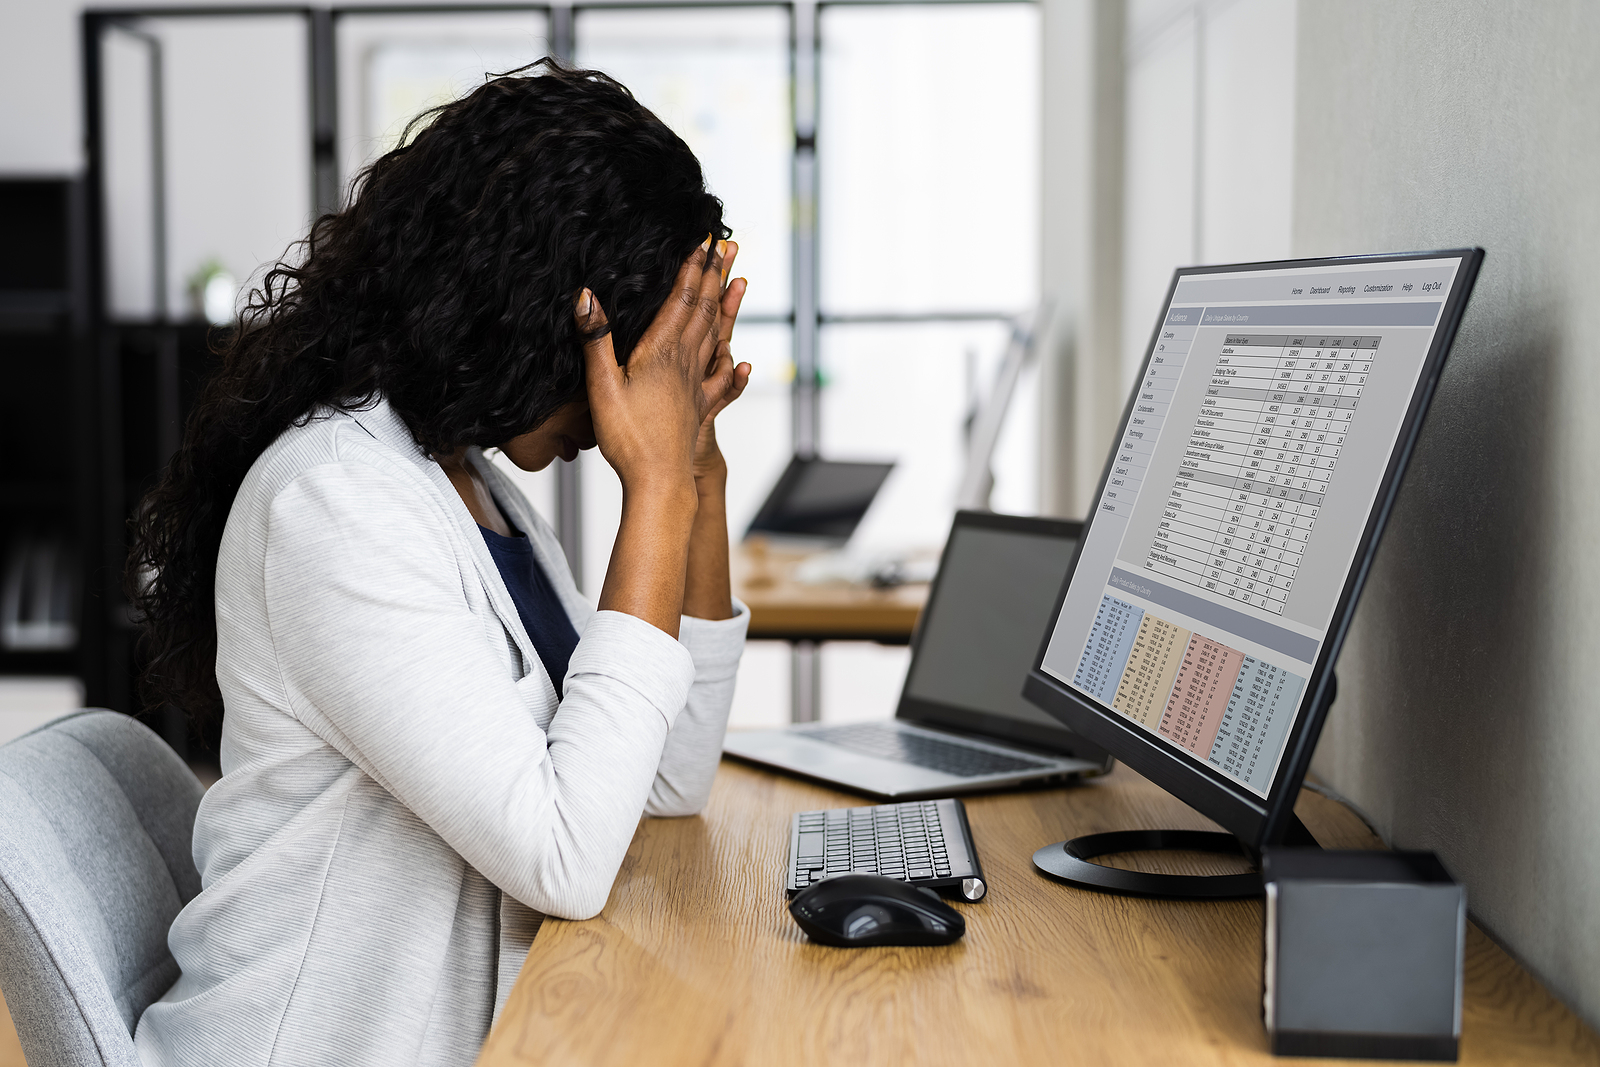 Woman sitting at desk stressed out. When you're a mom you have a lot on your plate. Get the support you need in therapy for moms in Detroit, MI today. Move past being an overwhelmed mom and find peace.